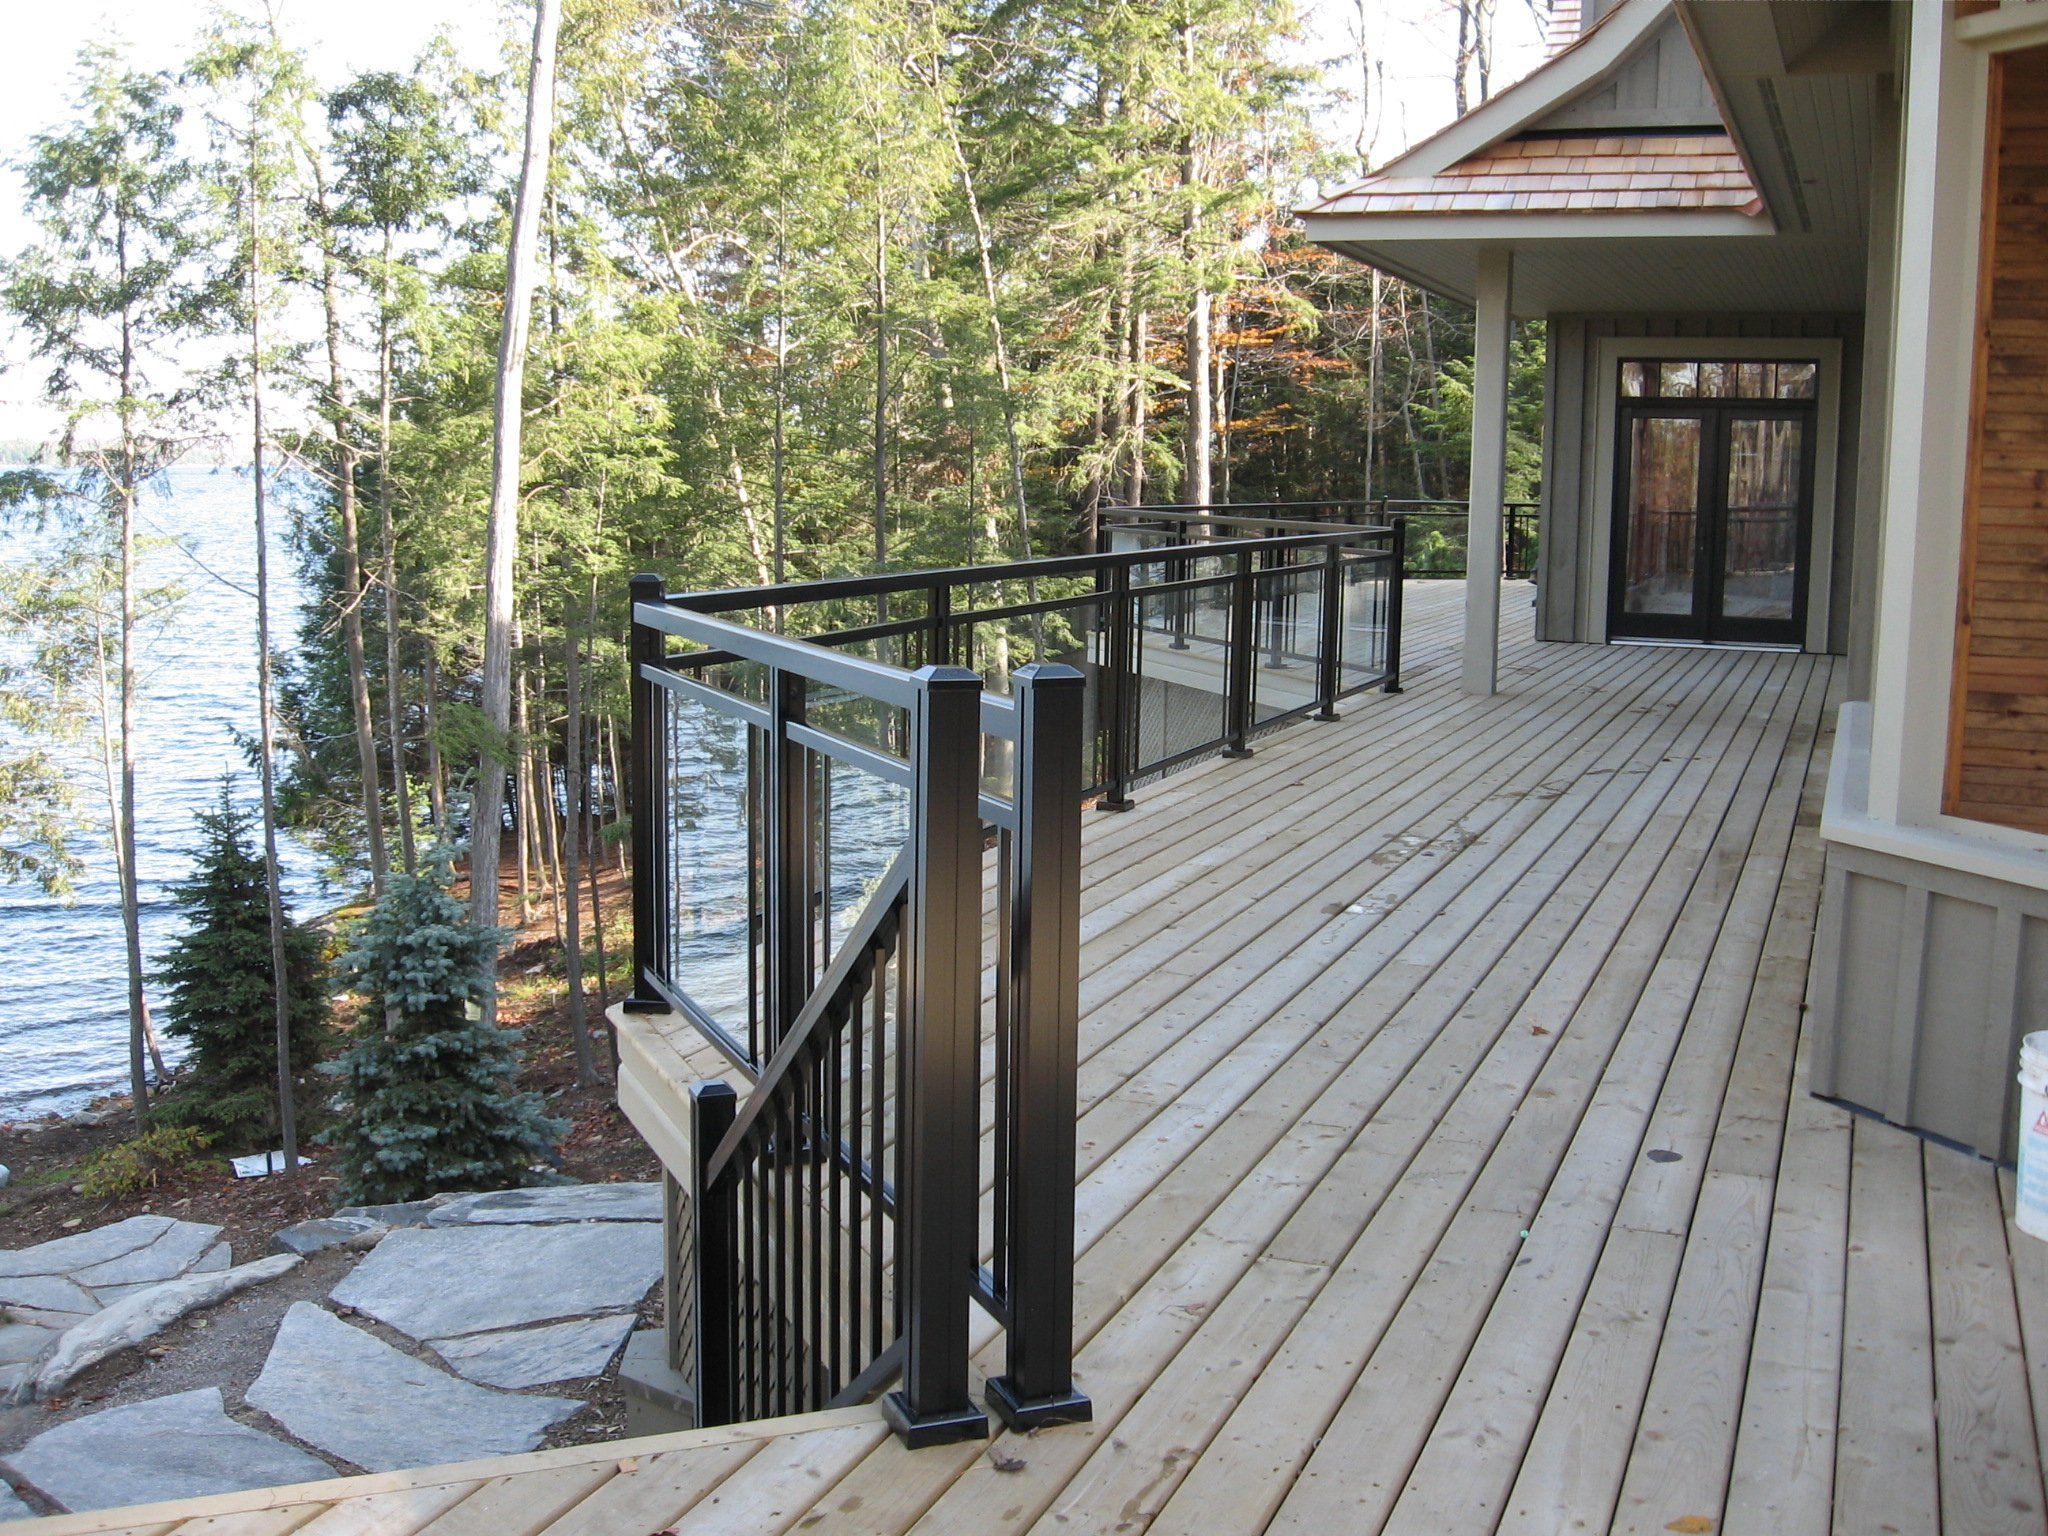 Craft-Bilt railing surpasses the industry. Thicker handrail extrusion, heavy aluminum posts, all engineered to meet the building code. Unmatched appearance, no visible fasteners and no plastic components, all extruded and cast aluminum parts. Best railing for your prestige cottage property, boat house railing and summer home balcony.